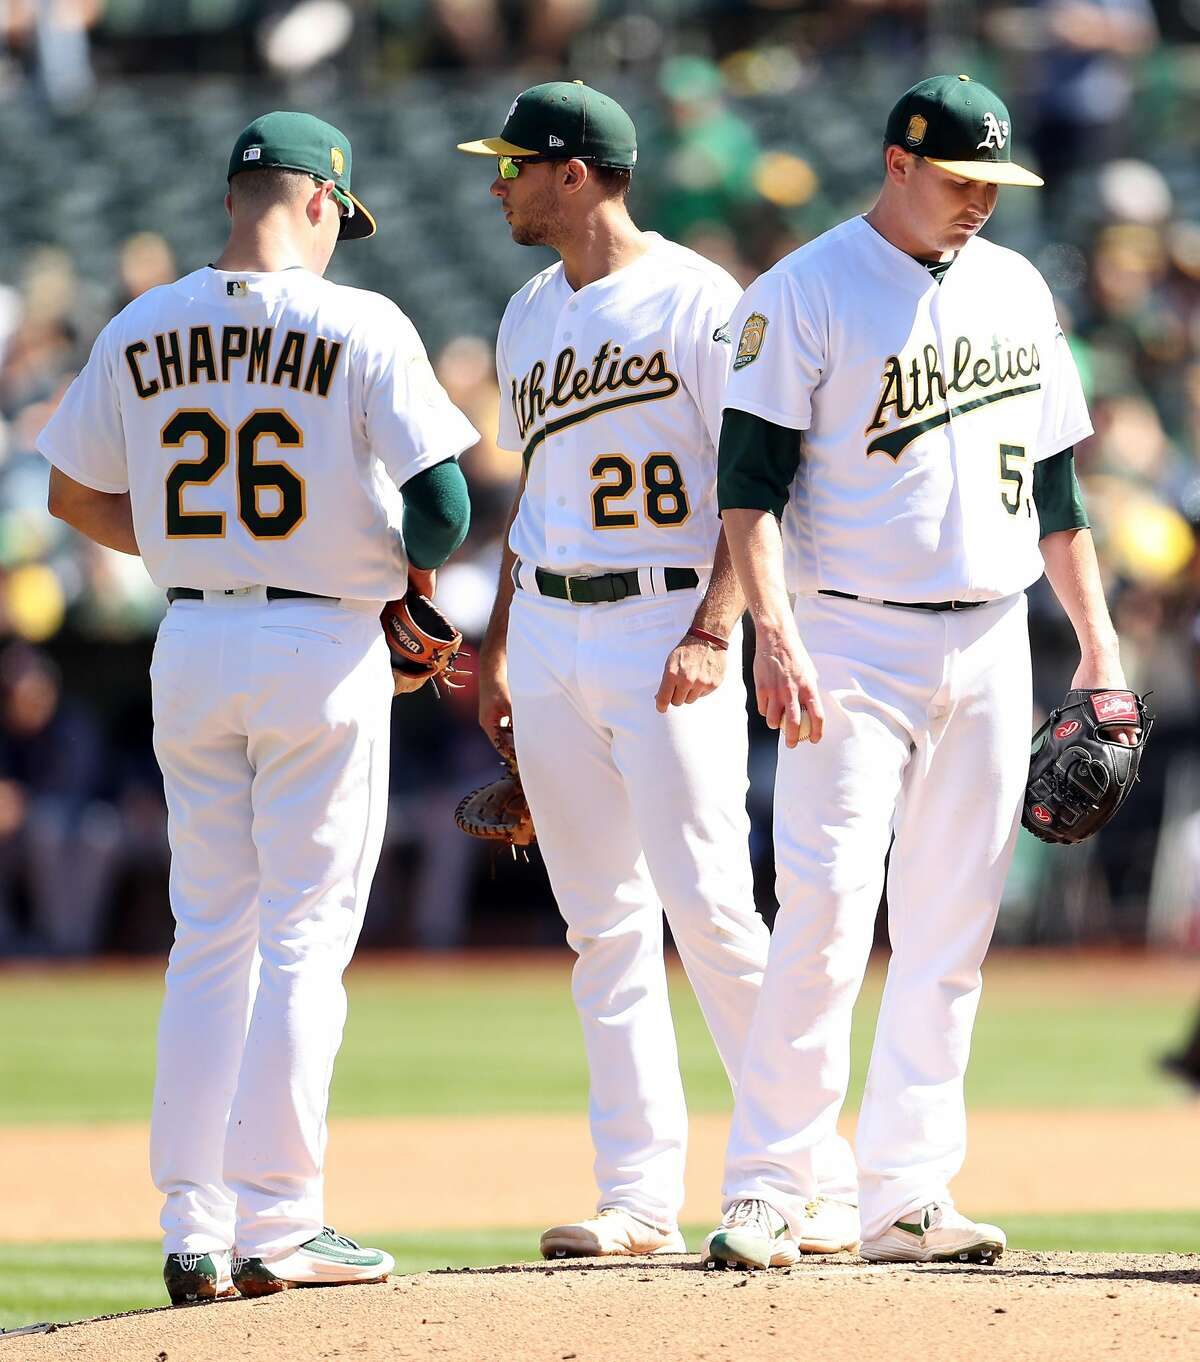 Oakland Athletics' starting pitcher Trevor Cahill waits to be removed during Minnesota Twins' 3-run 4th inning during MLB game at Oakland Coliseum in Oakland, Calif. on Sunday, September 23, 2018.